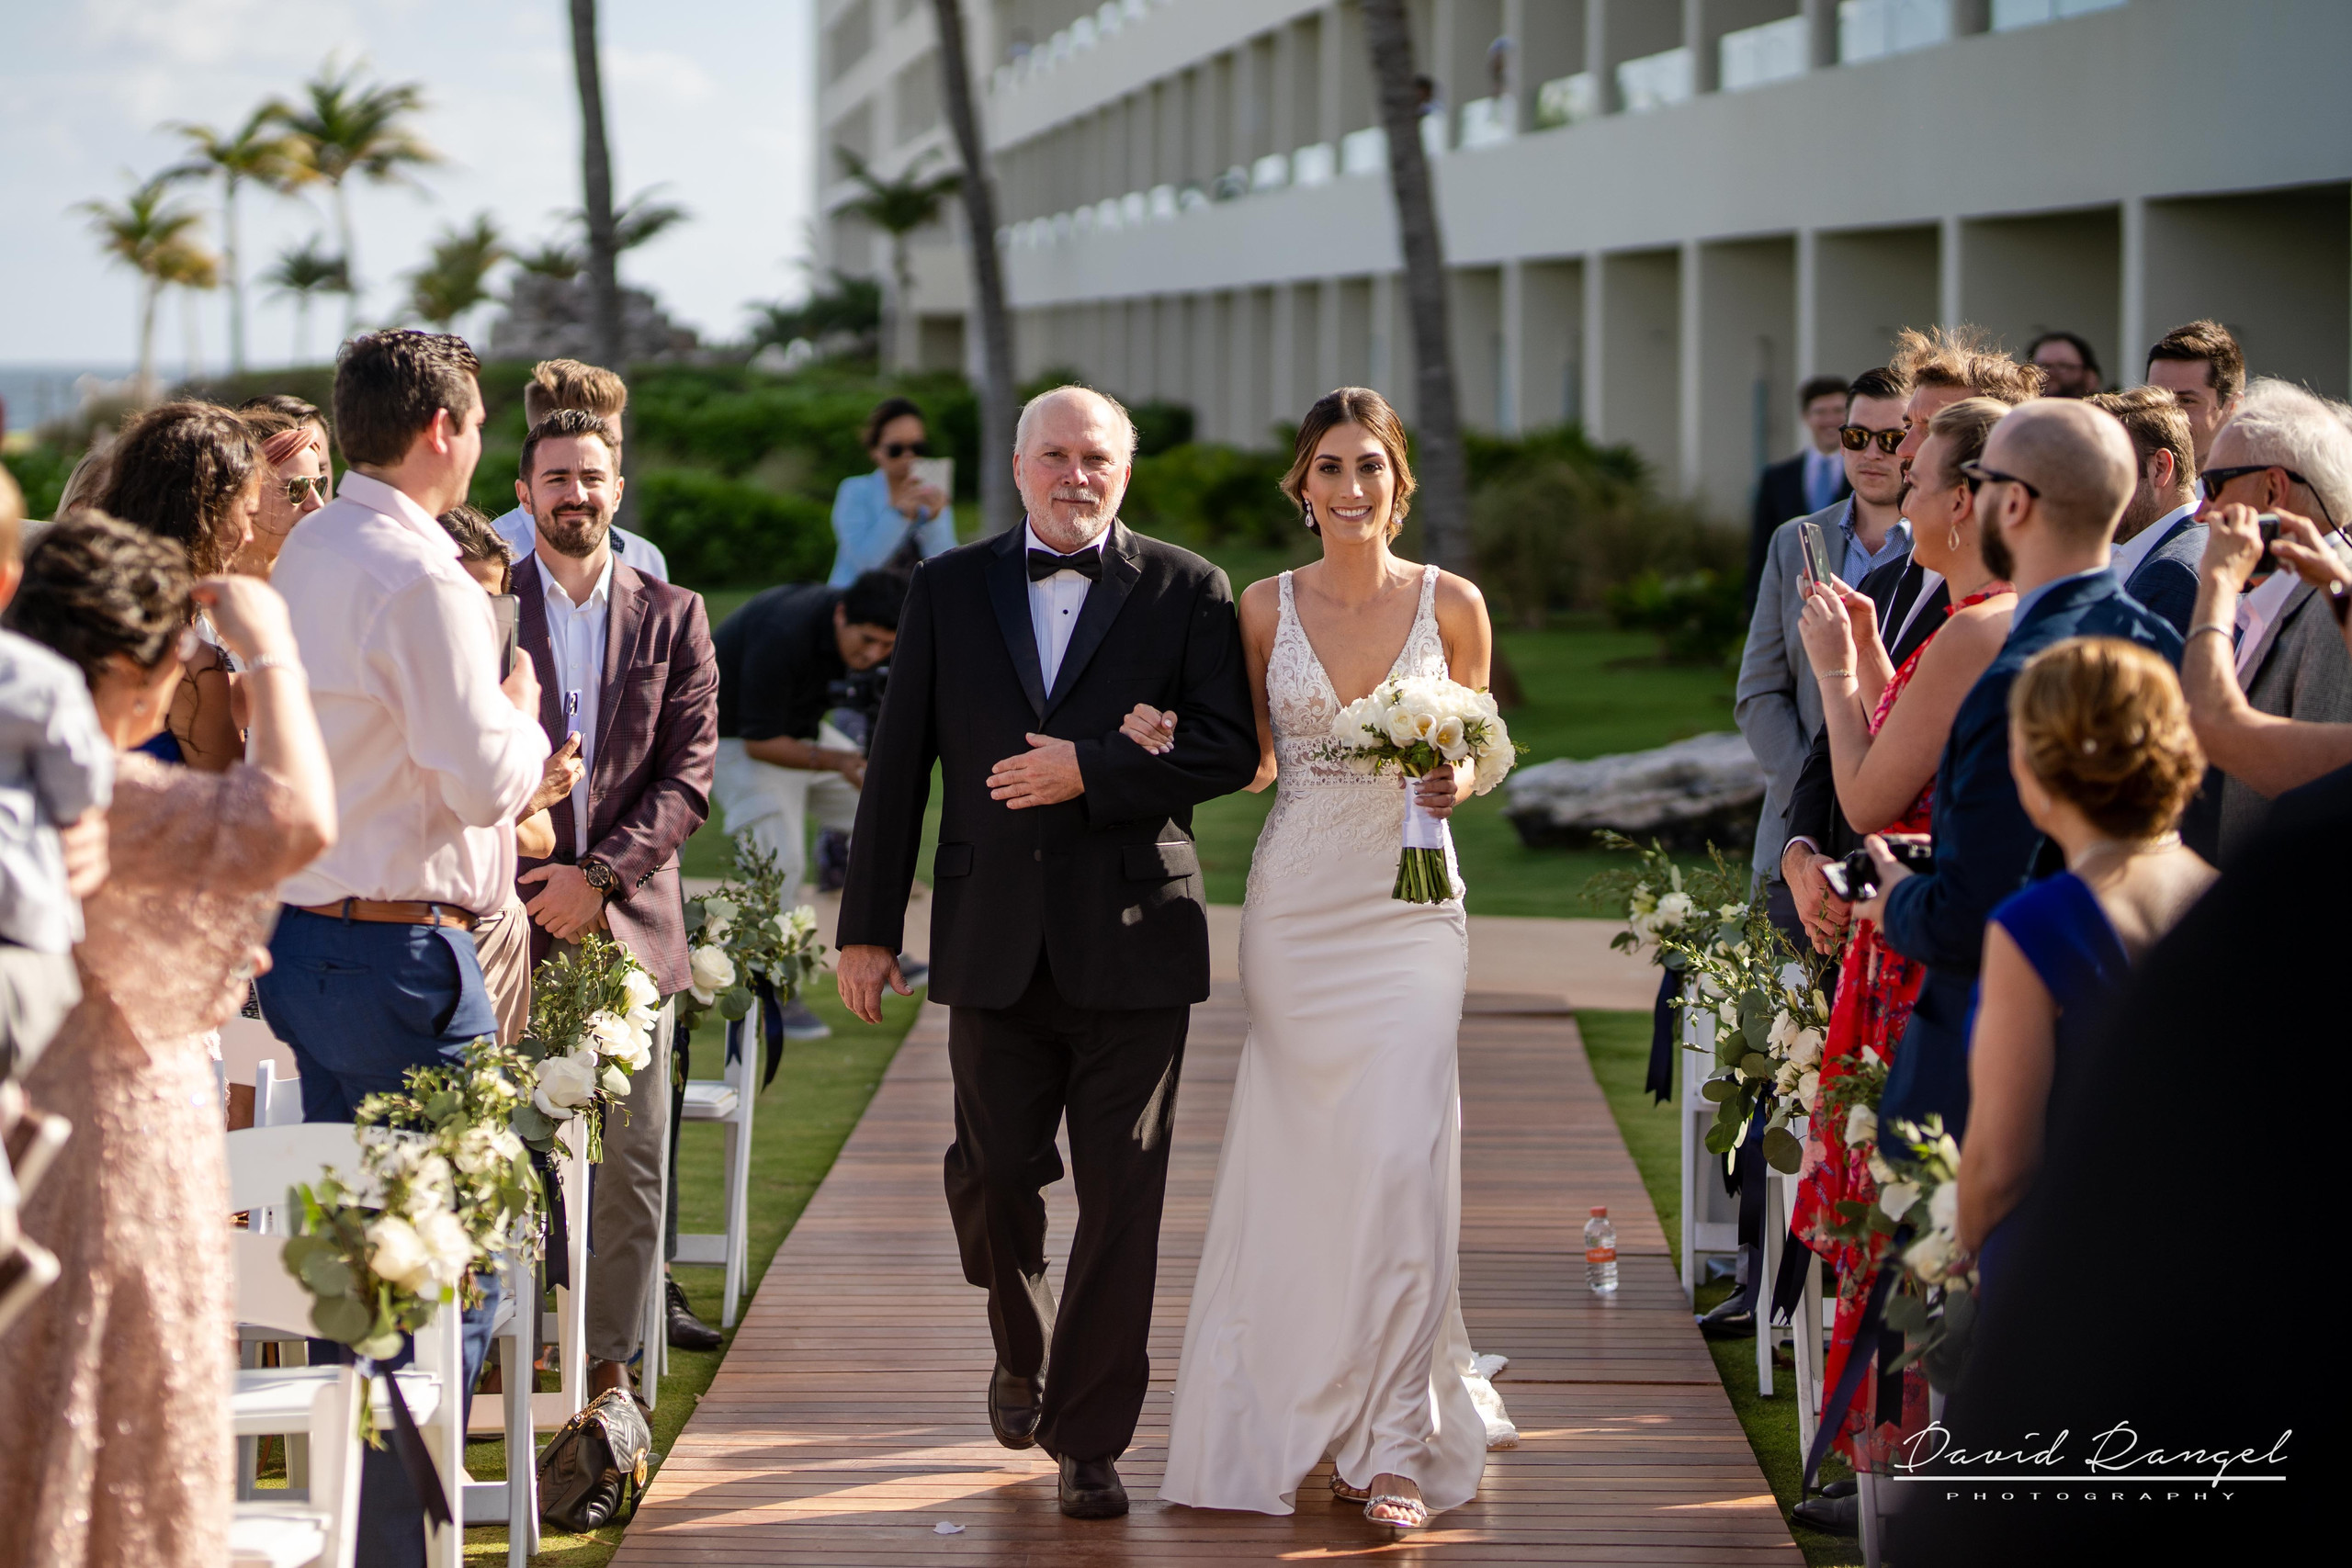 bride+walking+aisle+gazebo+lighthouse+father+guest